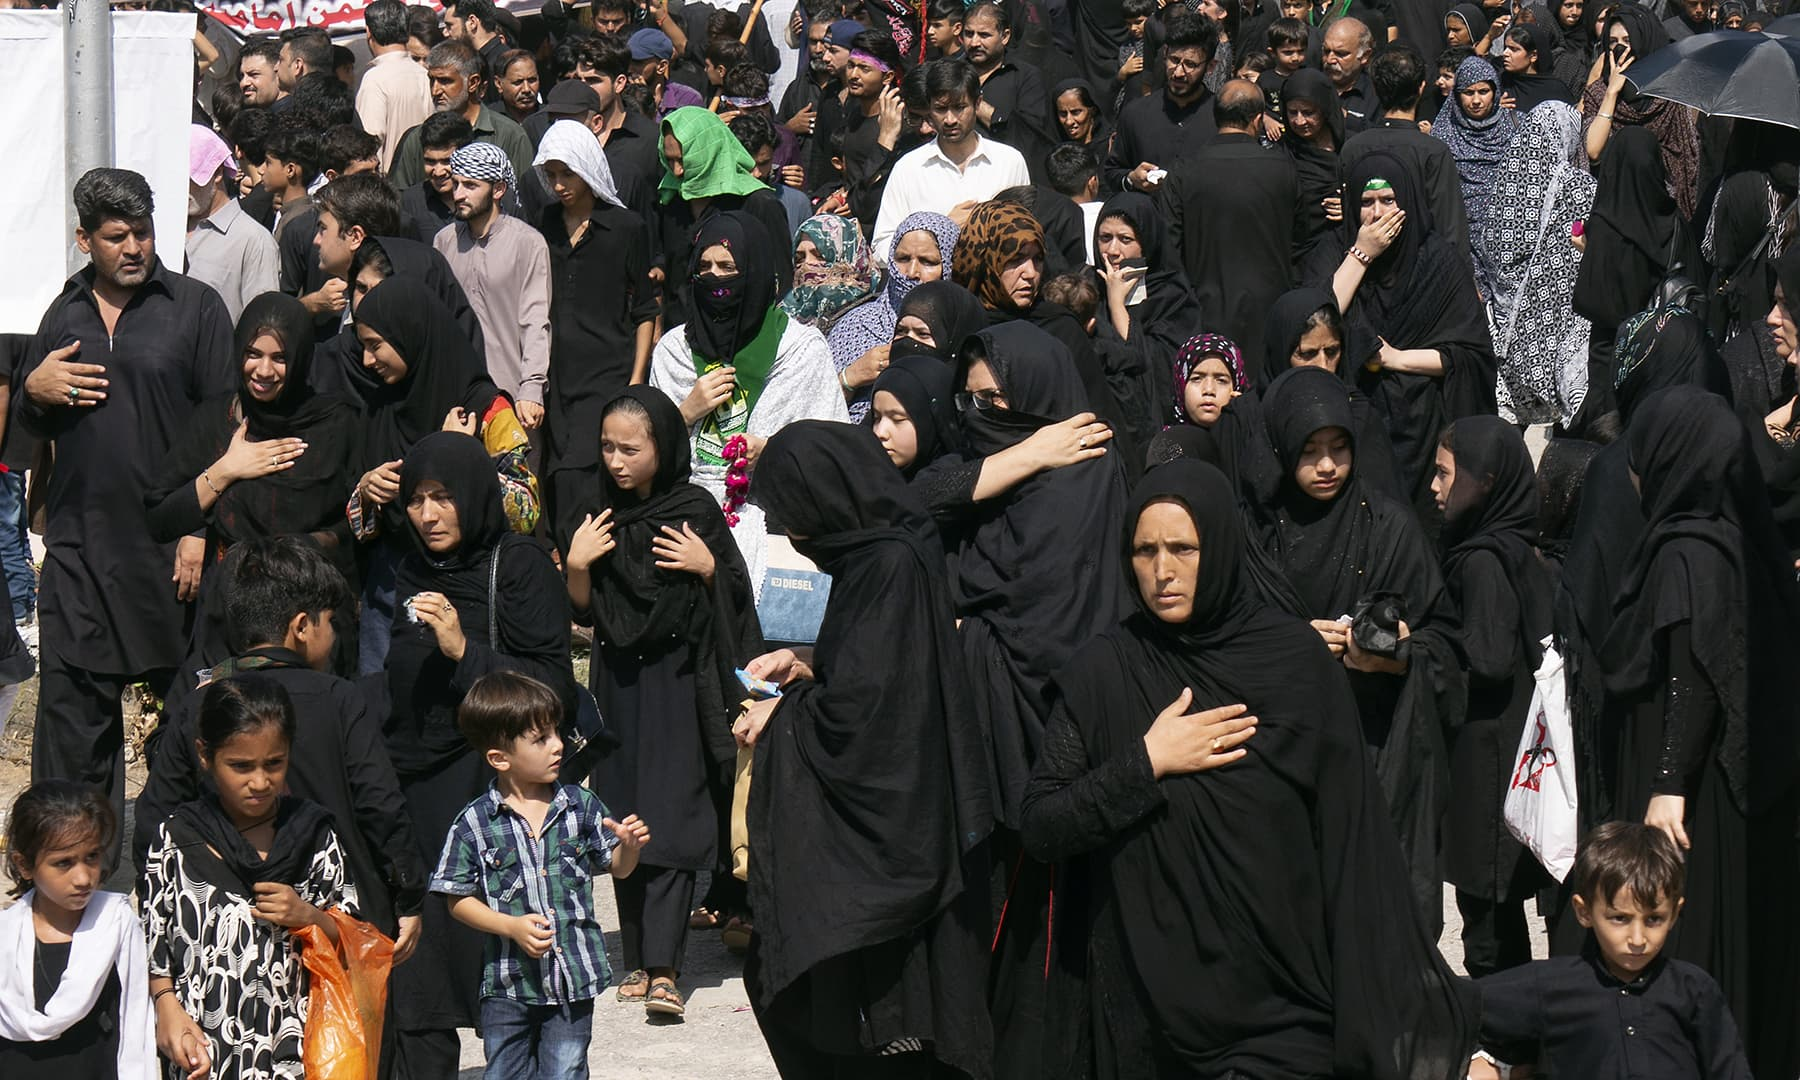 Shia Muslims attend a Muharram procession in Islamabad on Monday. — AP